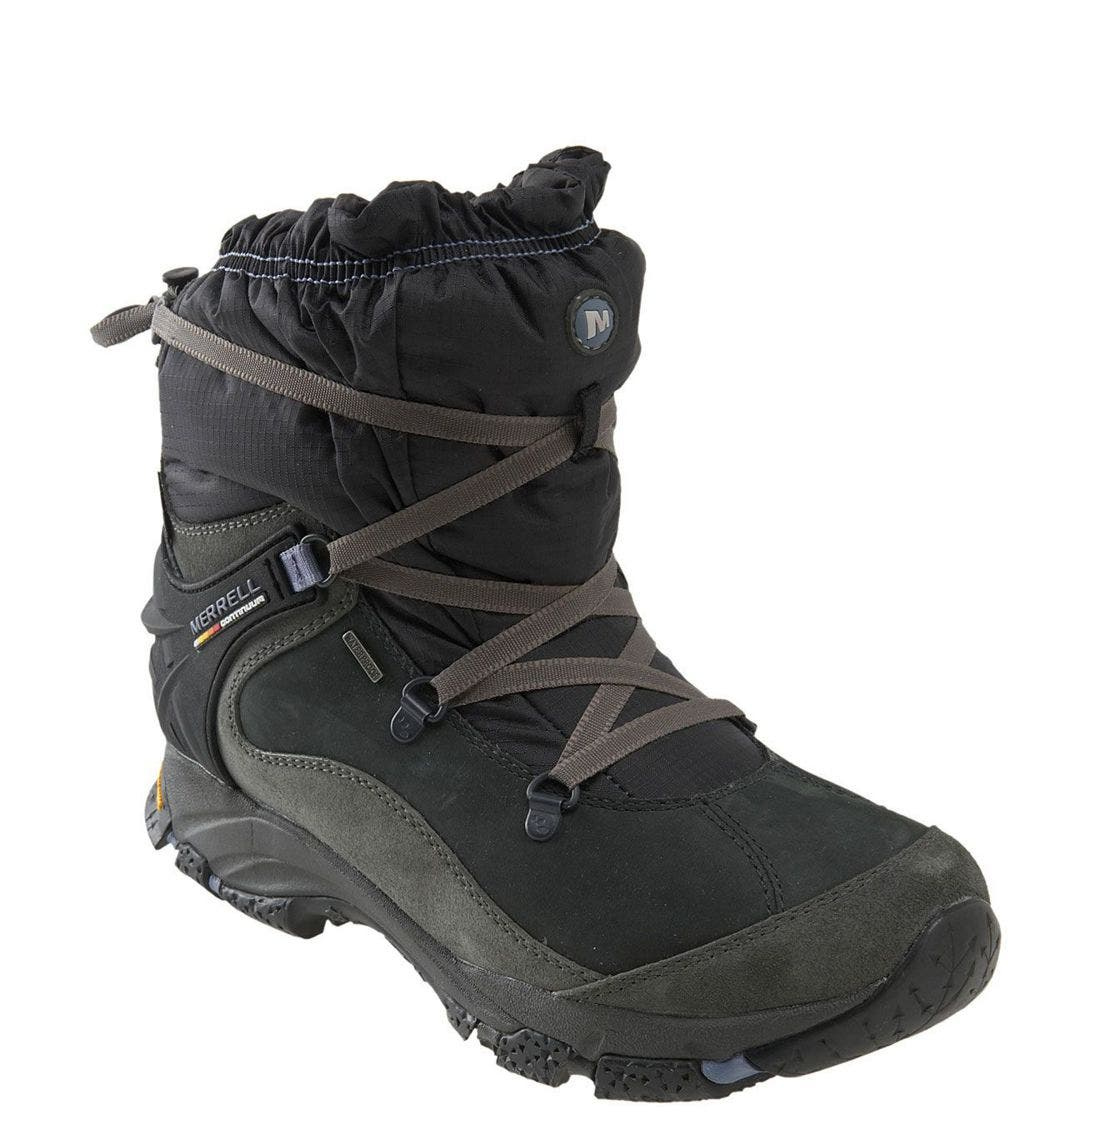 MERRELL 'Thermo Arc Forecast' Boot, Main, color, 001